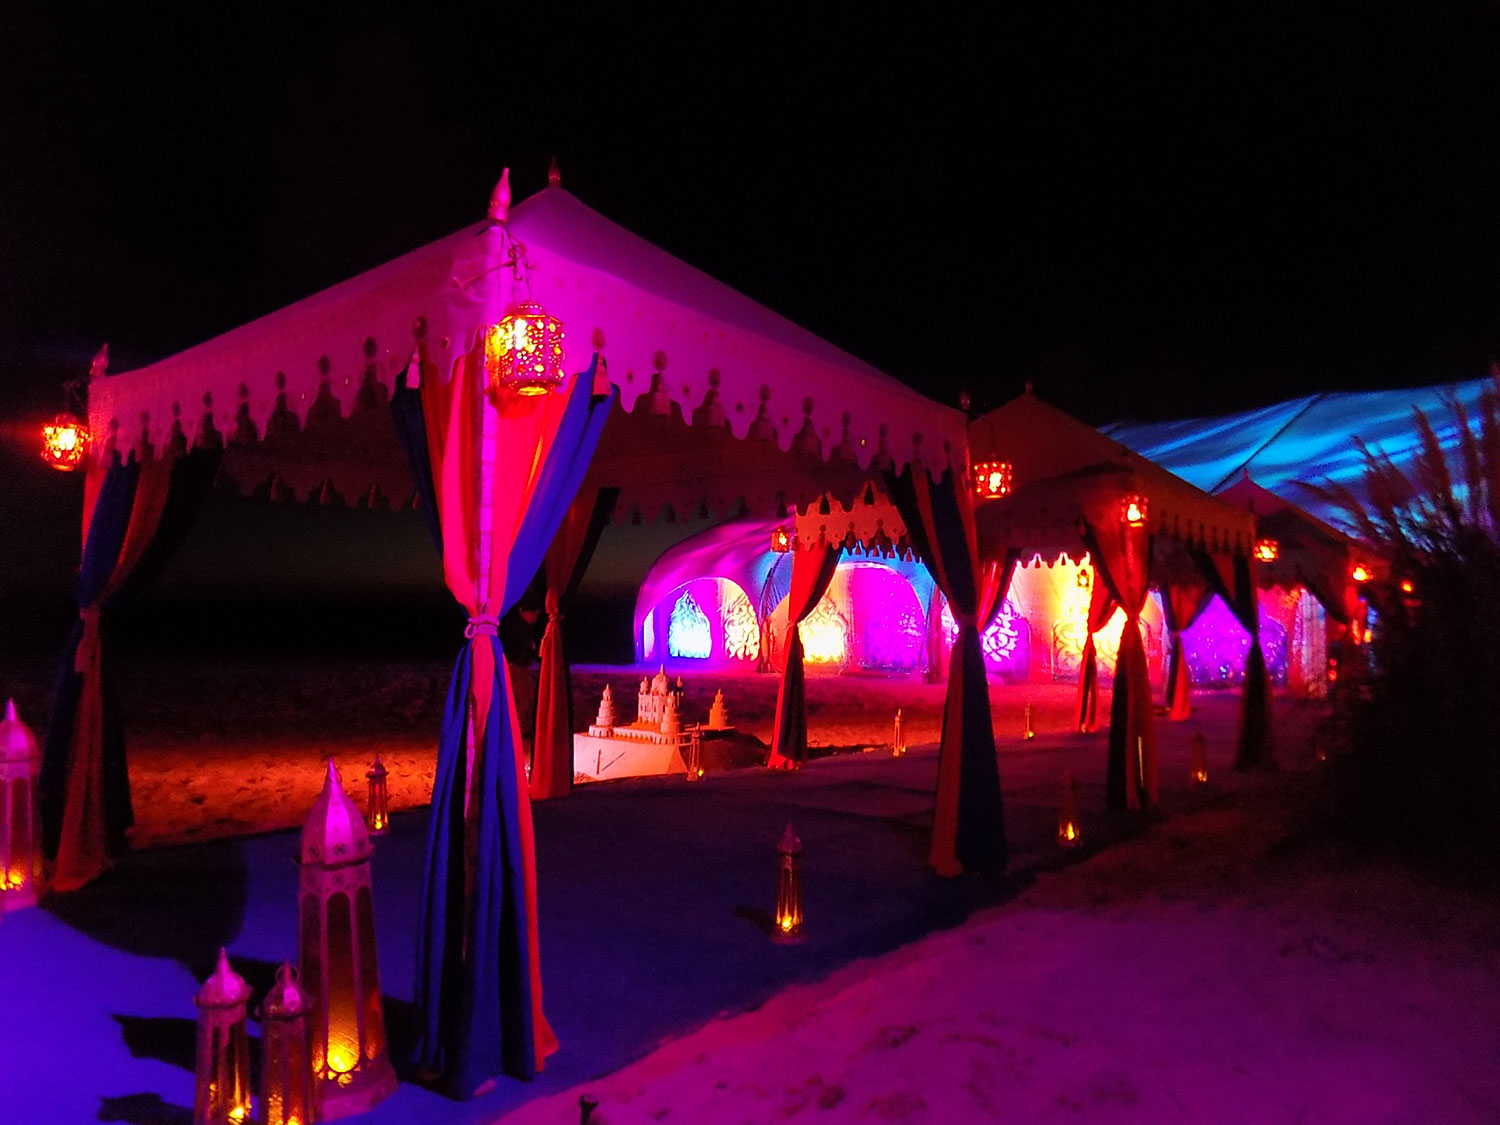 raj-tents-destination-weddings-pergola-entrance-way.jpg